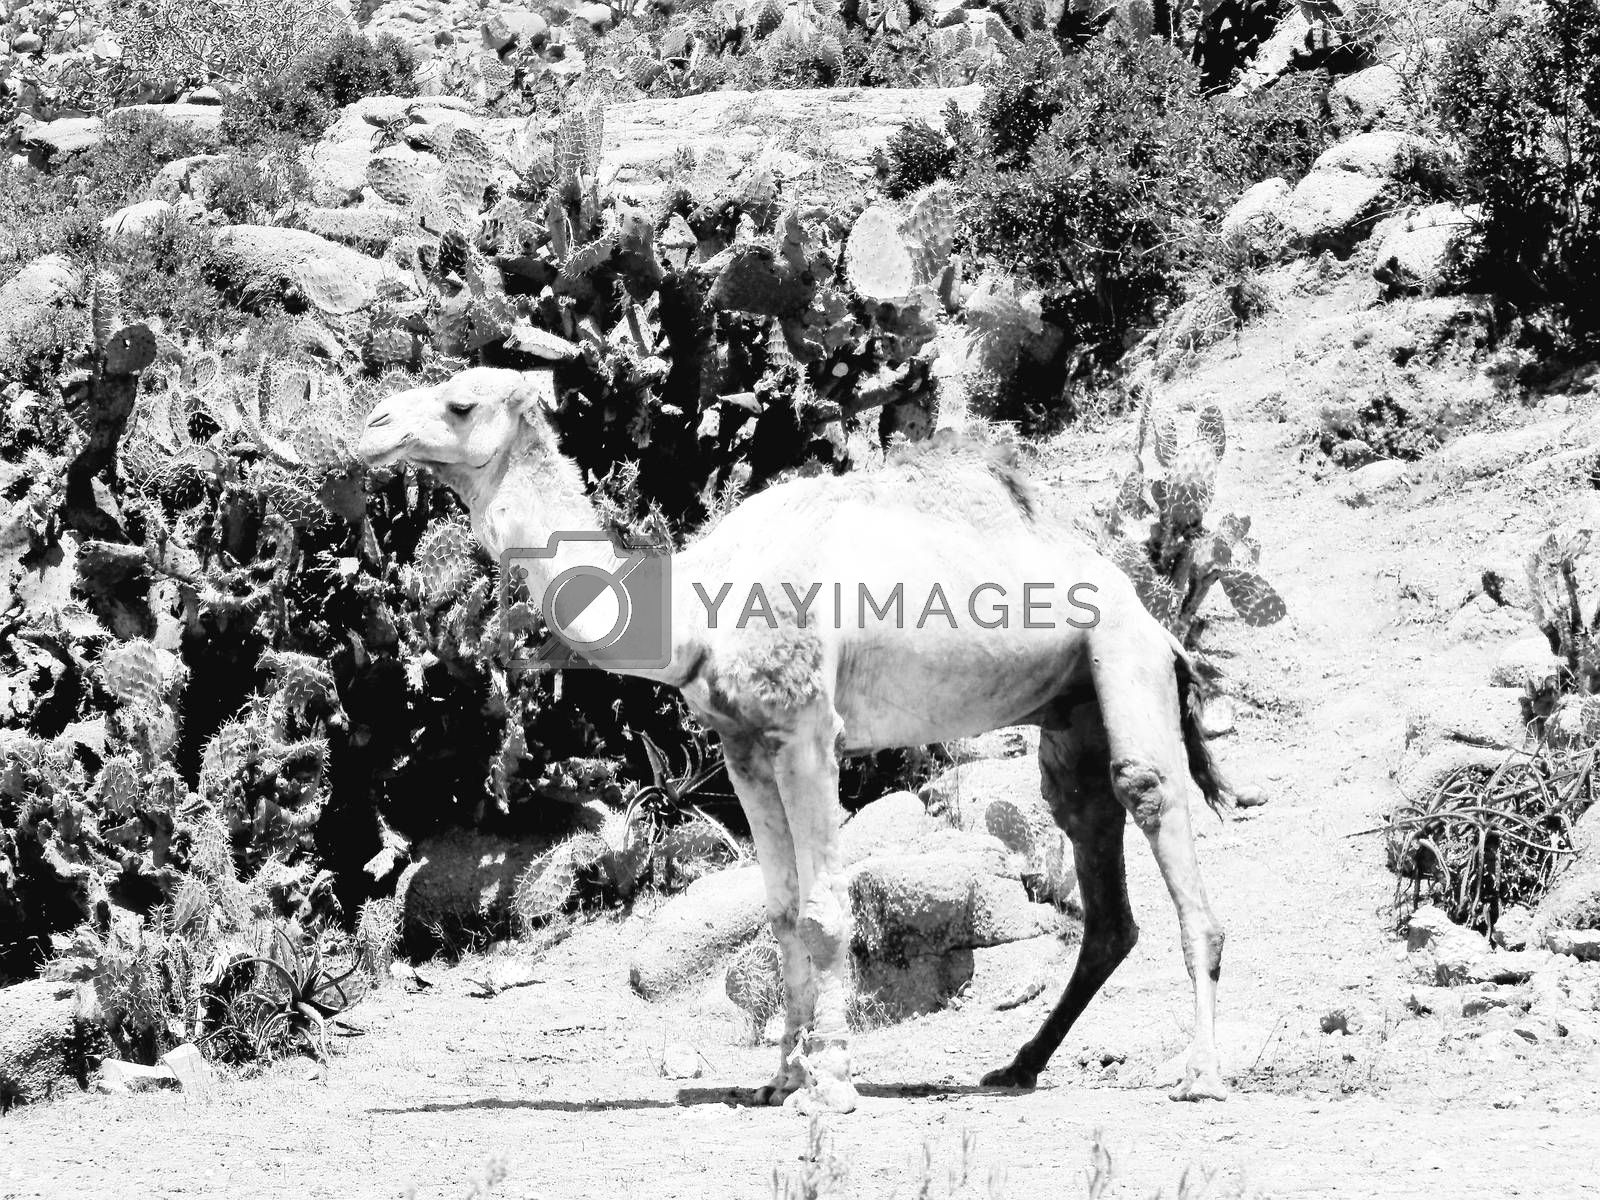 Tesseney, Eritrea - 10/11/2020: Beautiful photography of the landscape from the villages near the bord from Ethiopia. Old desert villages with some domestic animals.